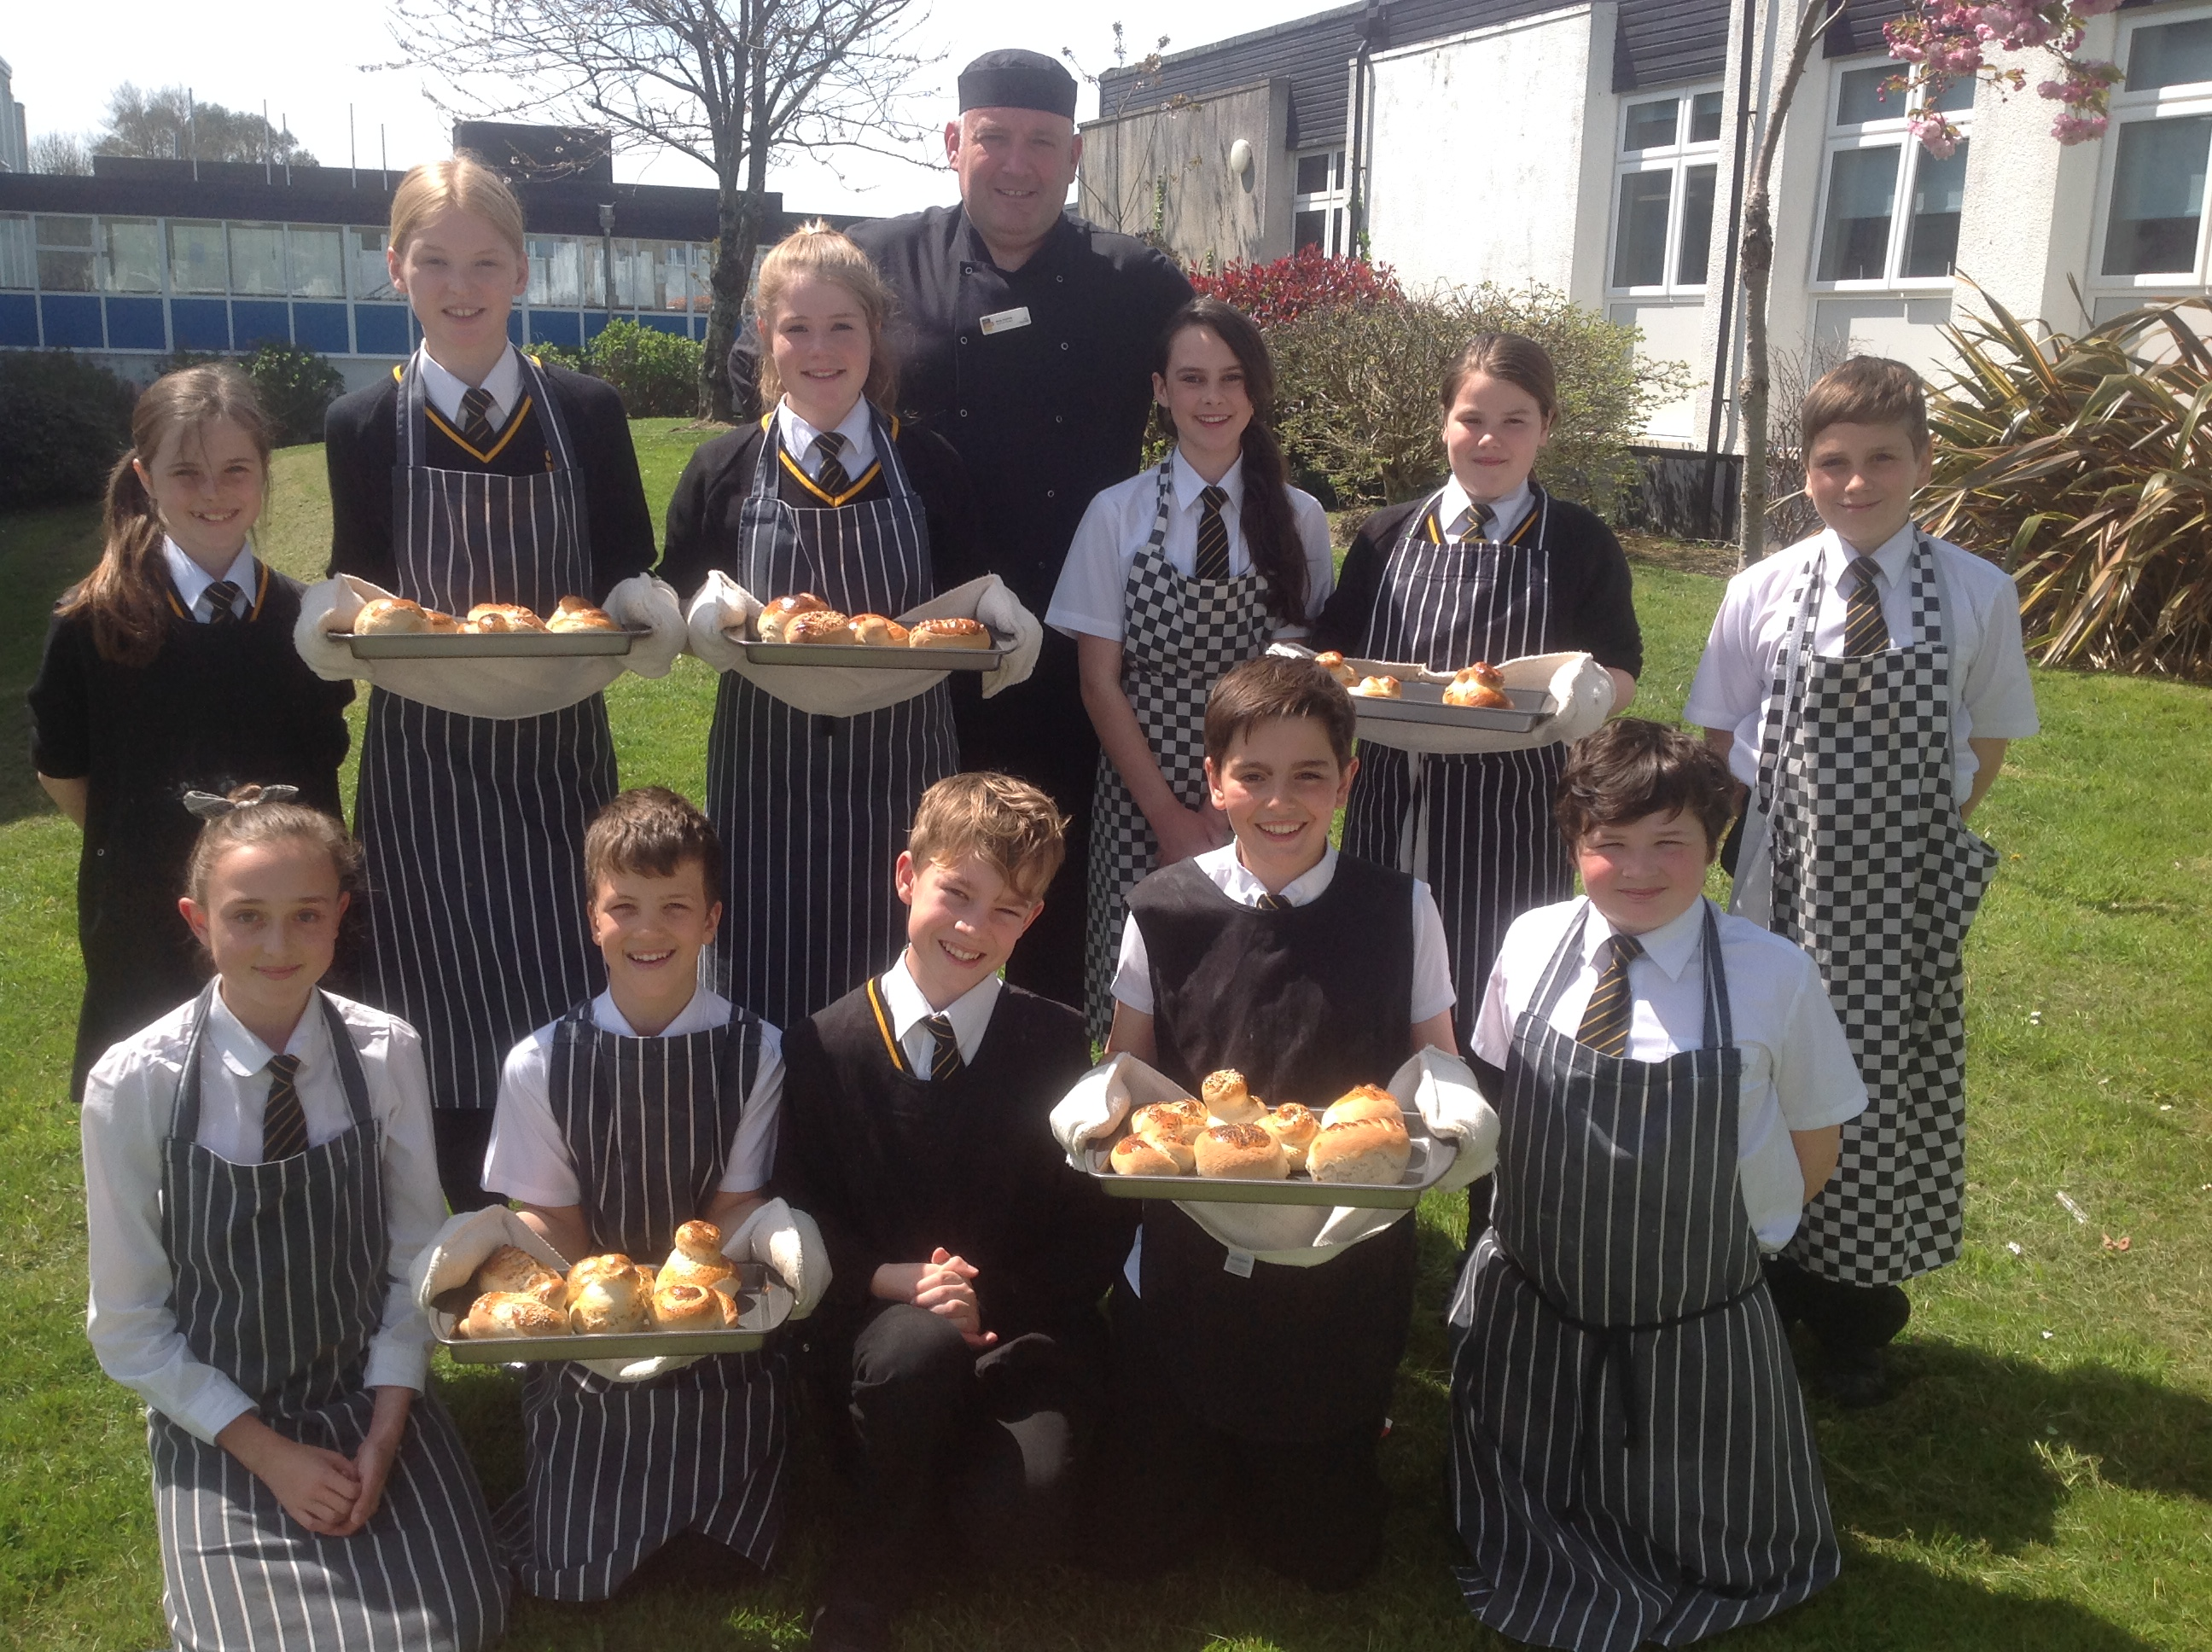 Baking Bread with Chartwells - Penrice Academy